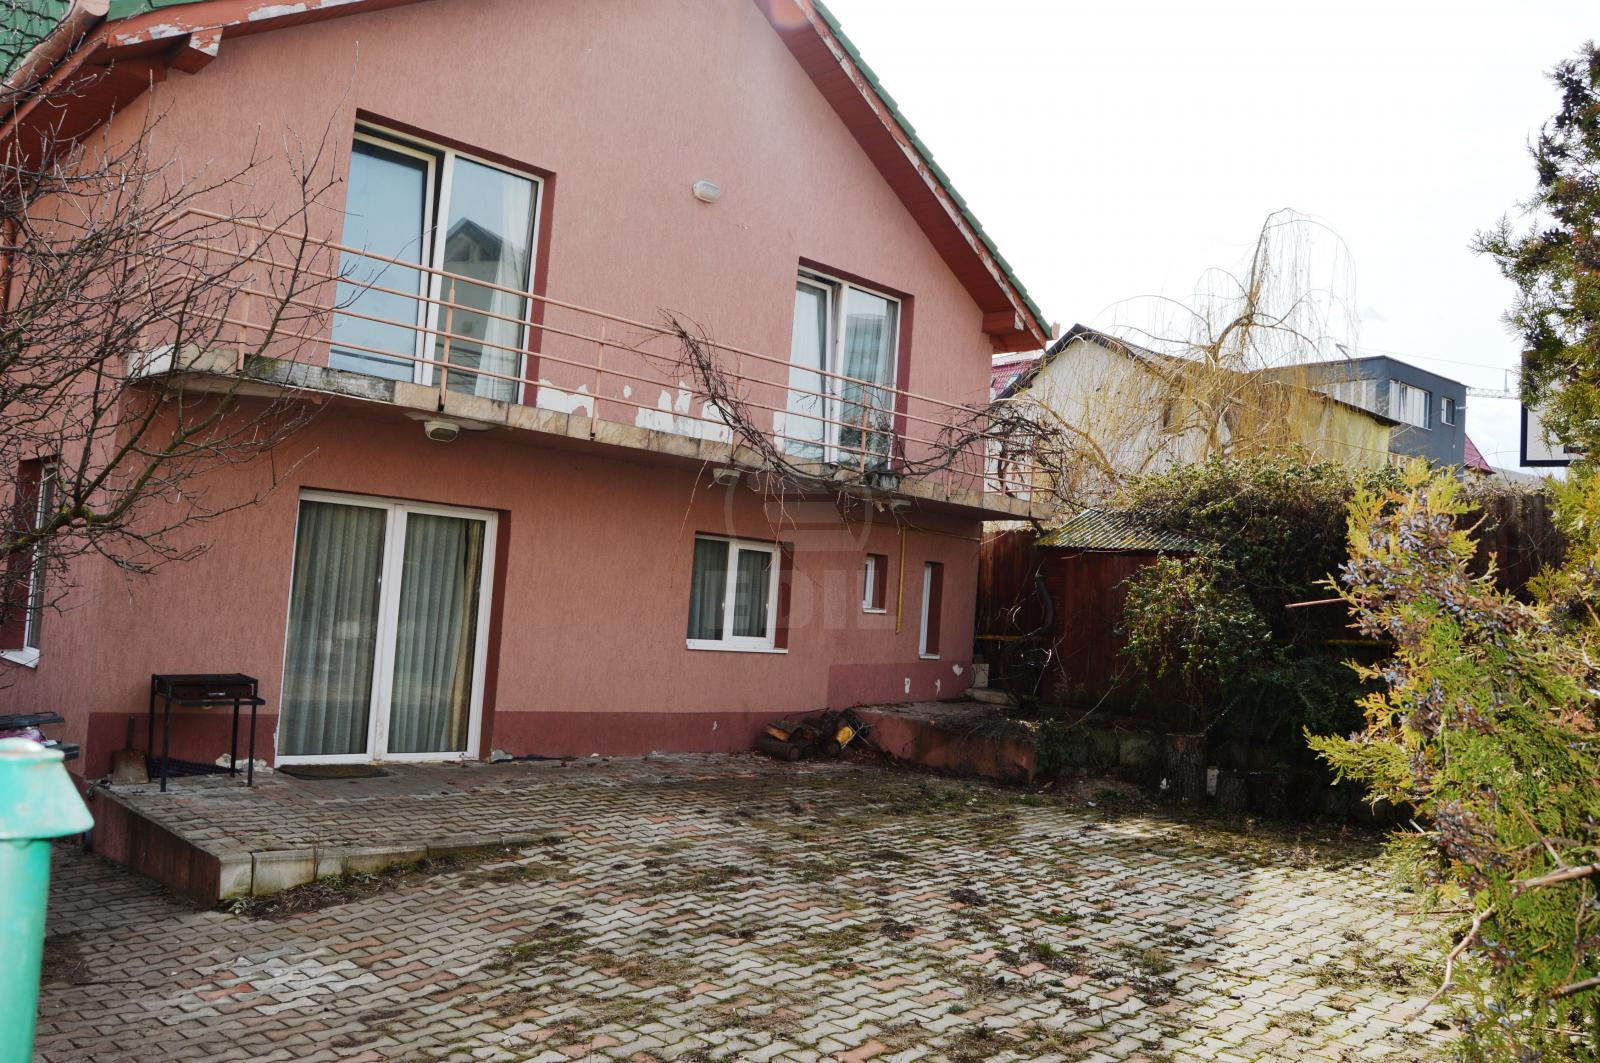 House for sale 5 rooms, CACJ285647-8